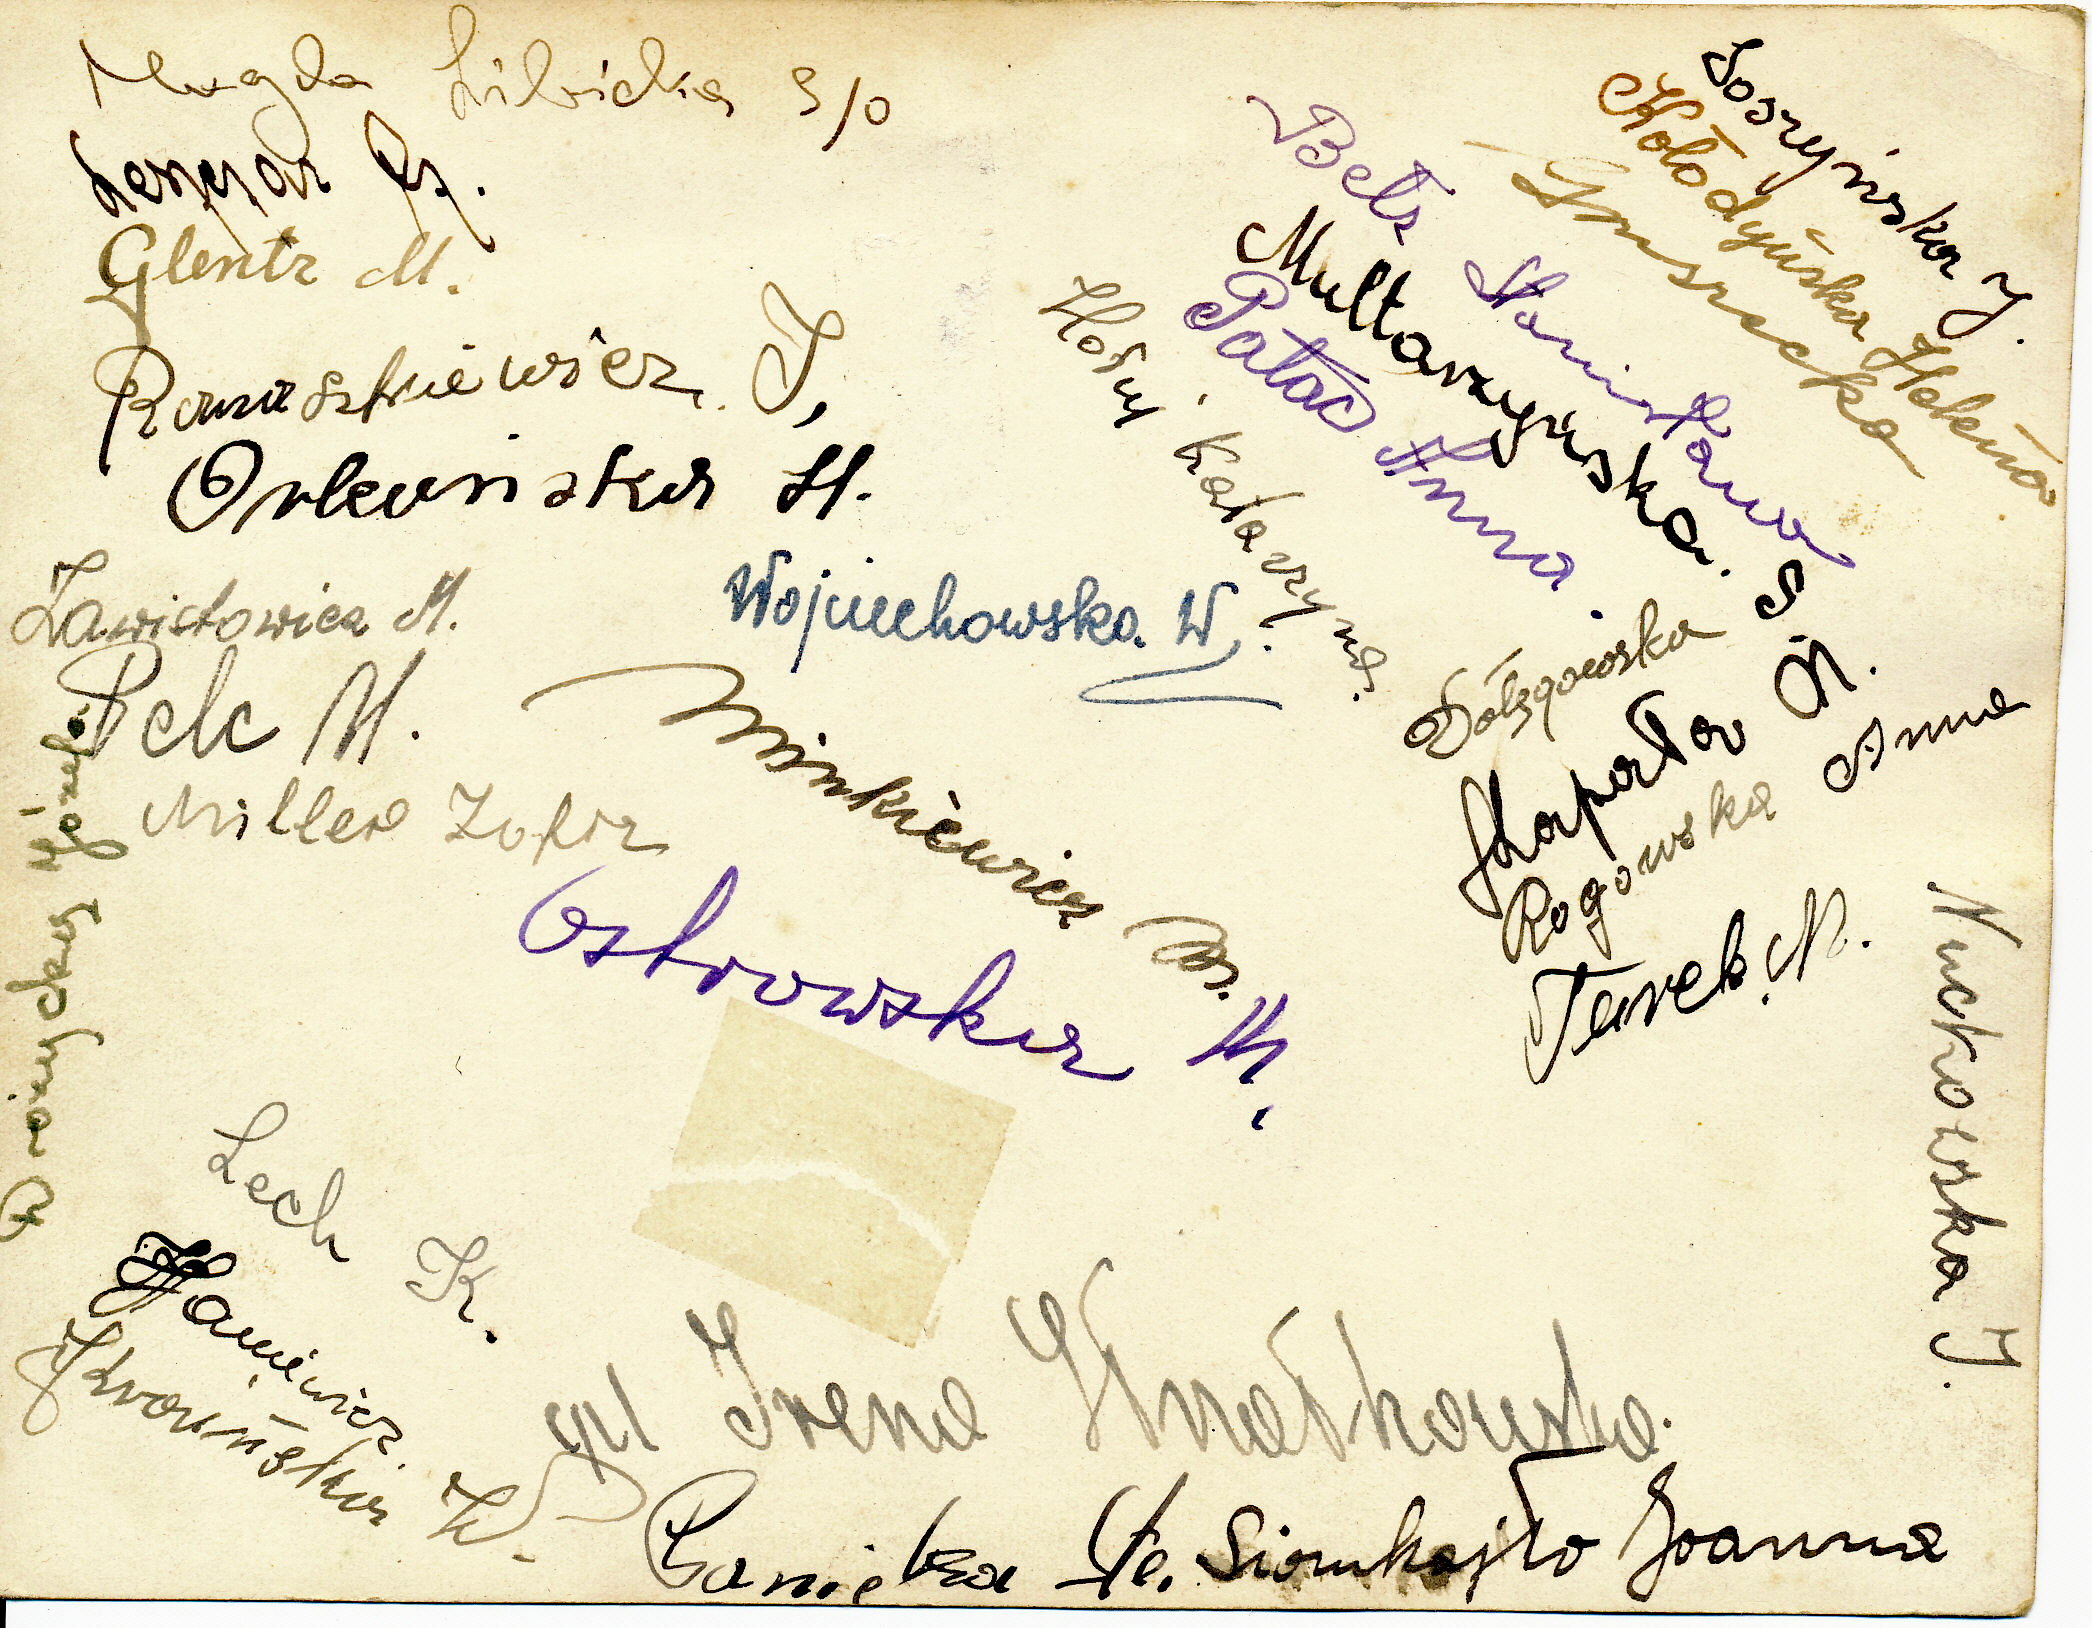 Signatures on back of previous photo